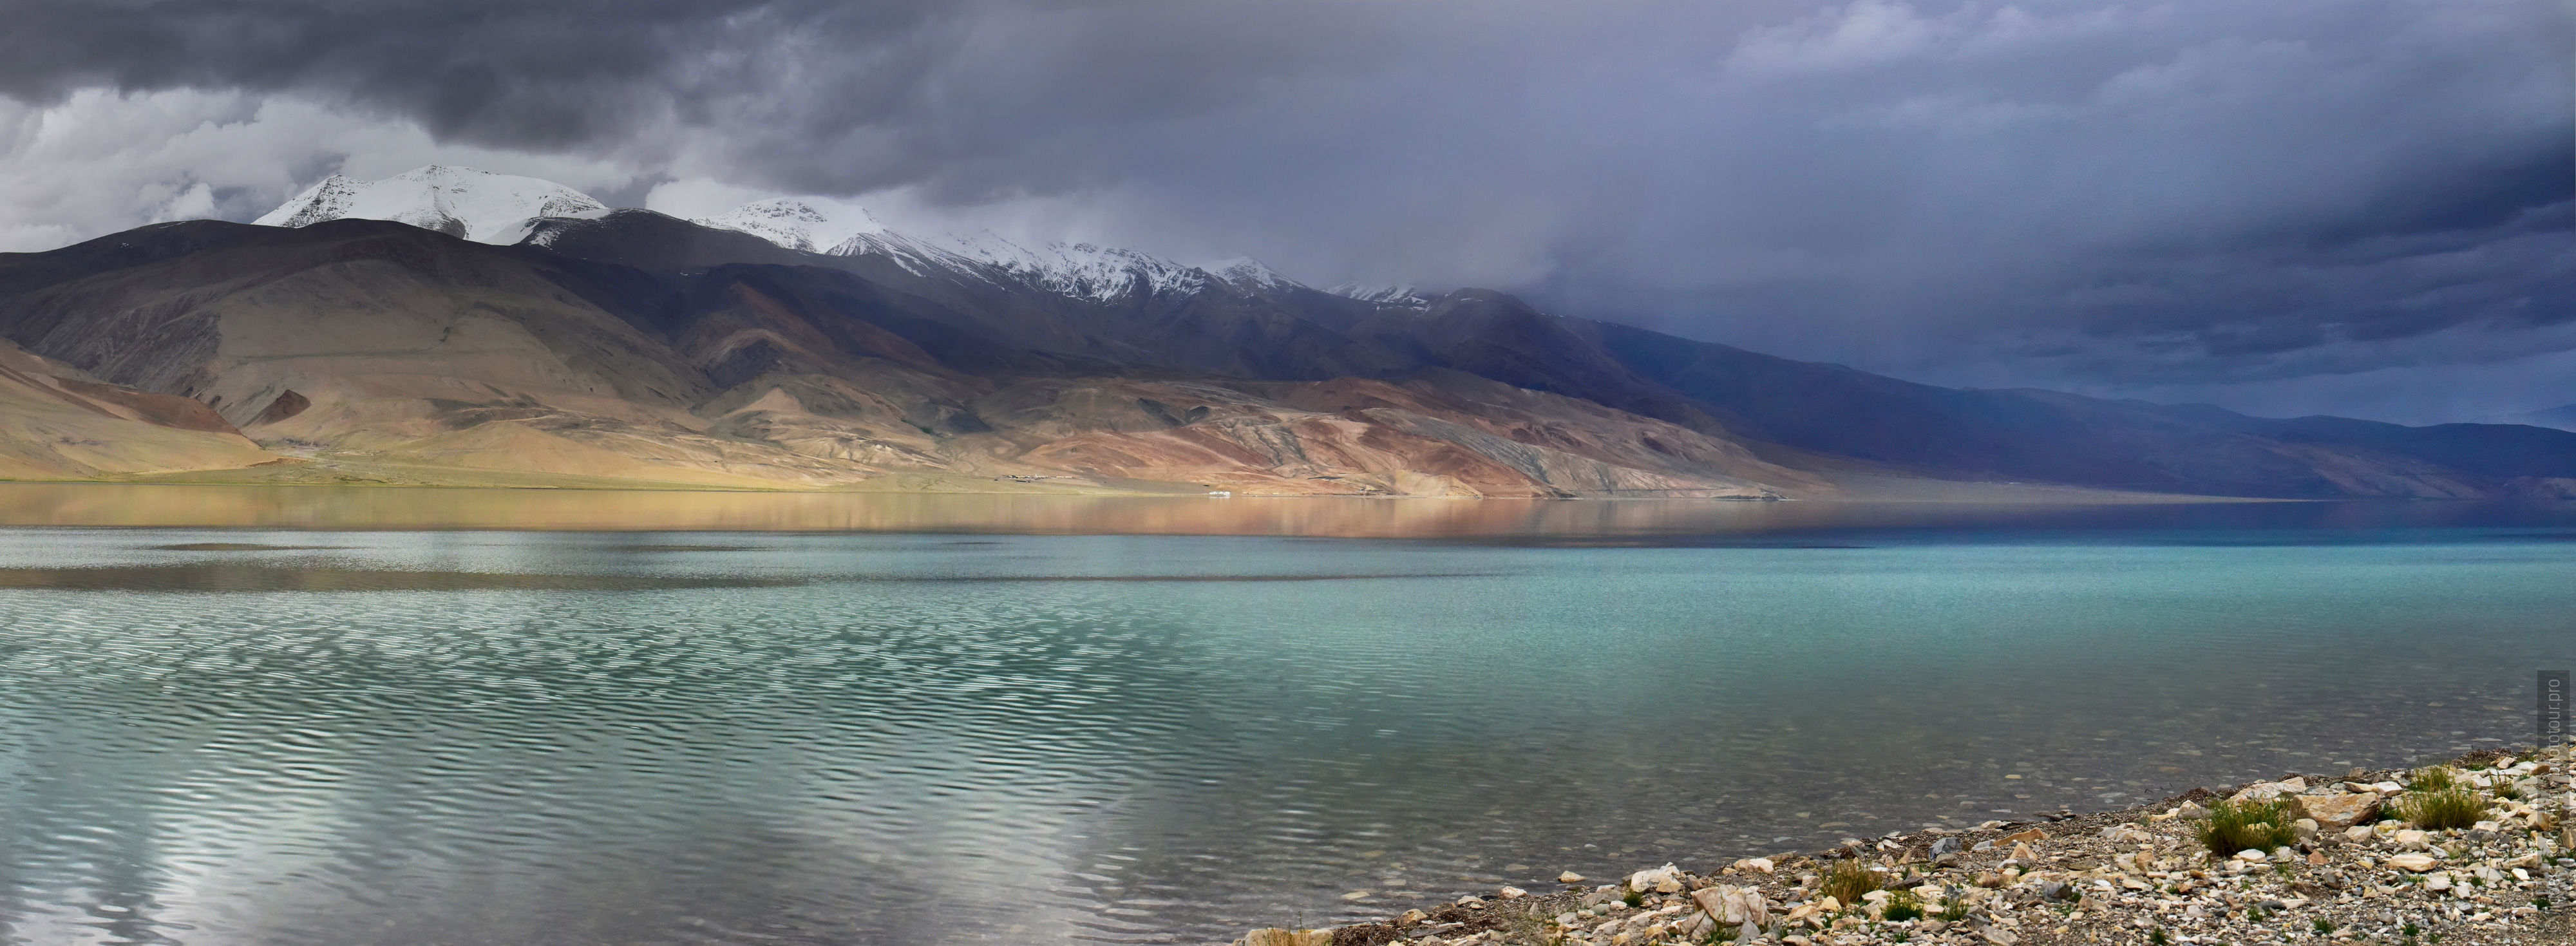 Lake Tso Moriri. Tour for artists in Tibet: Watercolor-1: Watercolor painting in Ladakh with Pavel Pugachev, 04.08. - 16.08. 2018